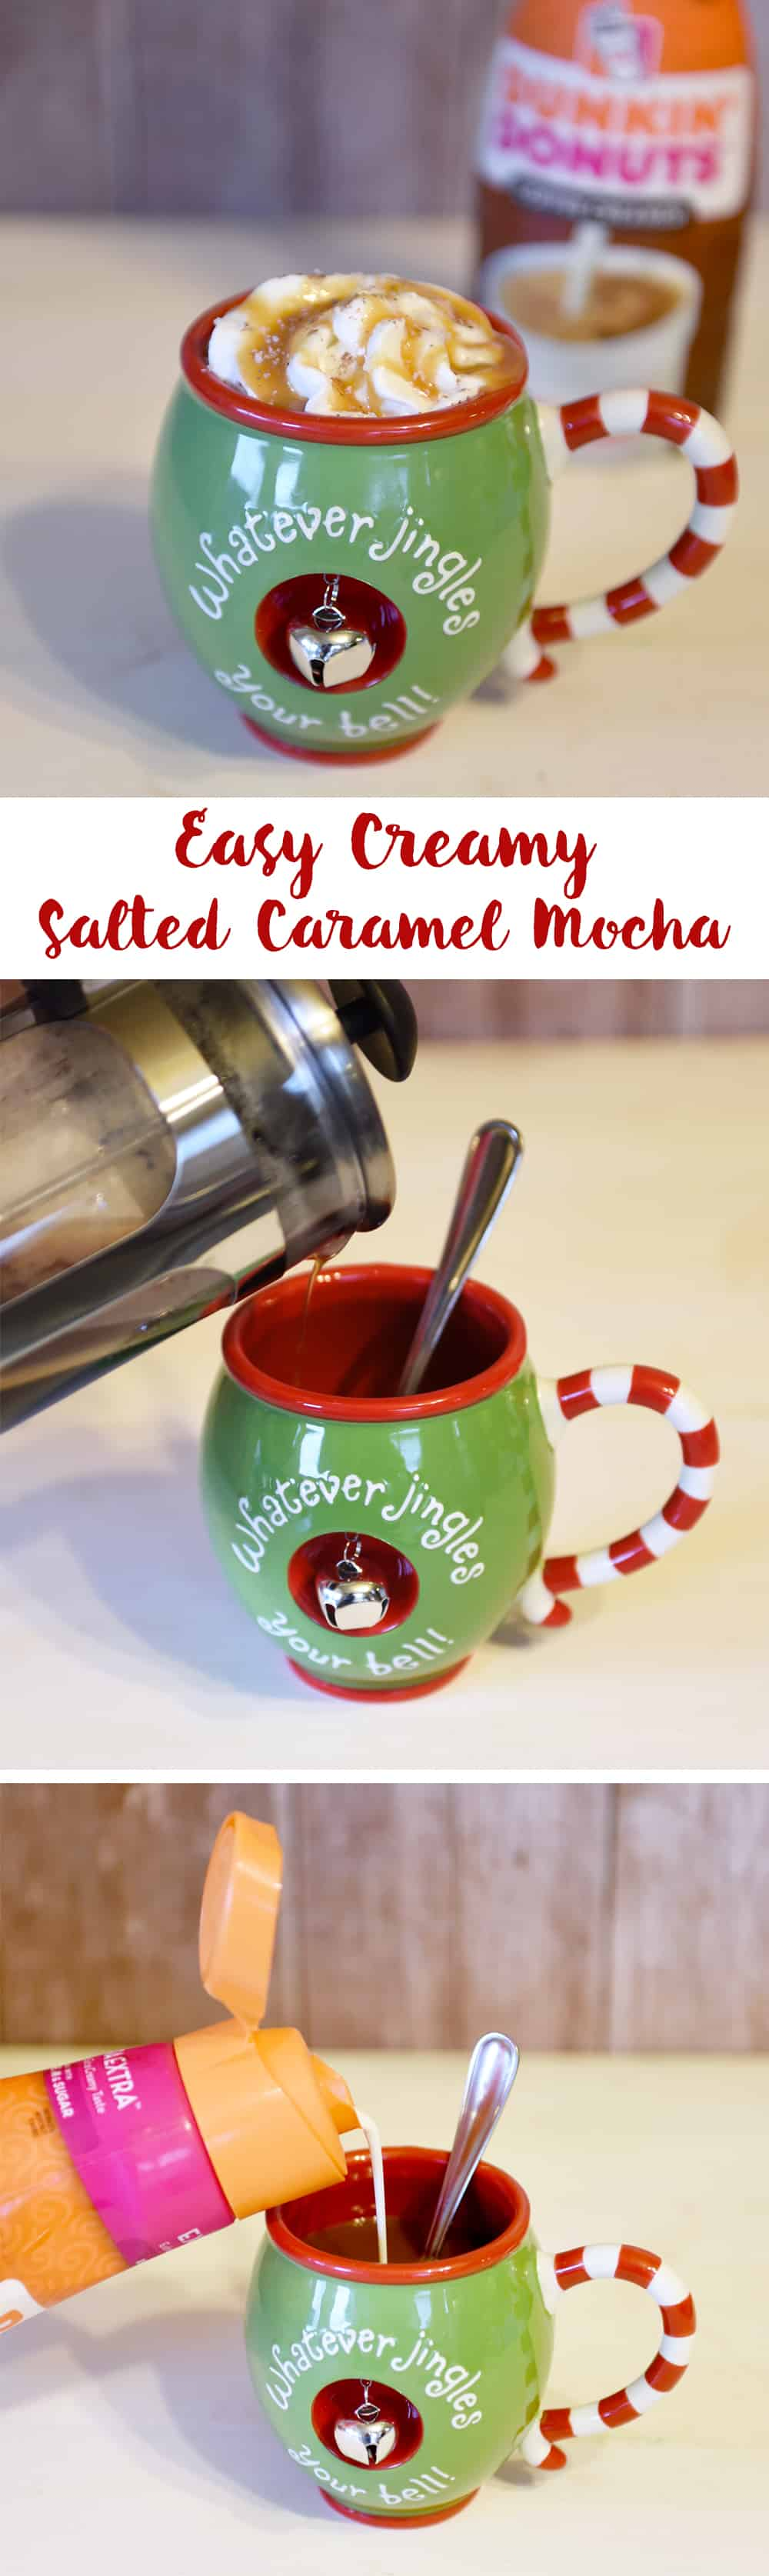 Easy Creamy Salted Caramel Mocha!! If you love mochas then this easy at home version is for you!!